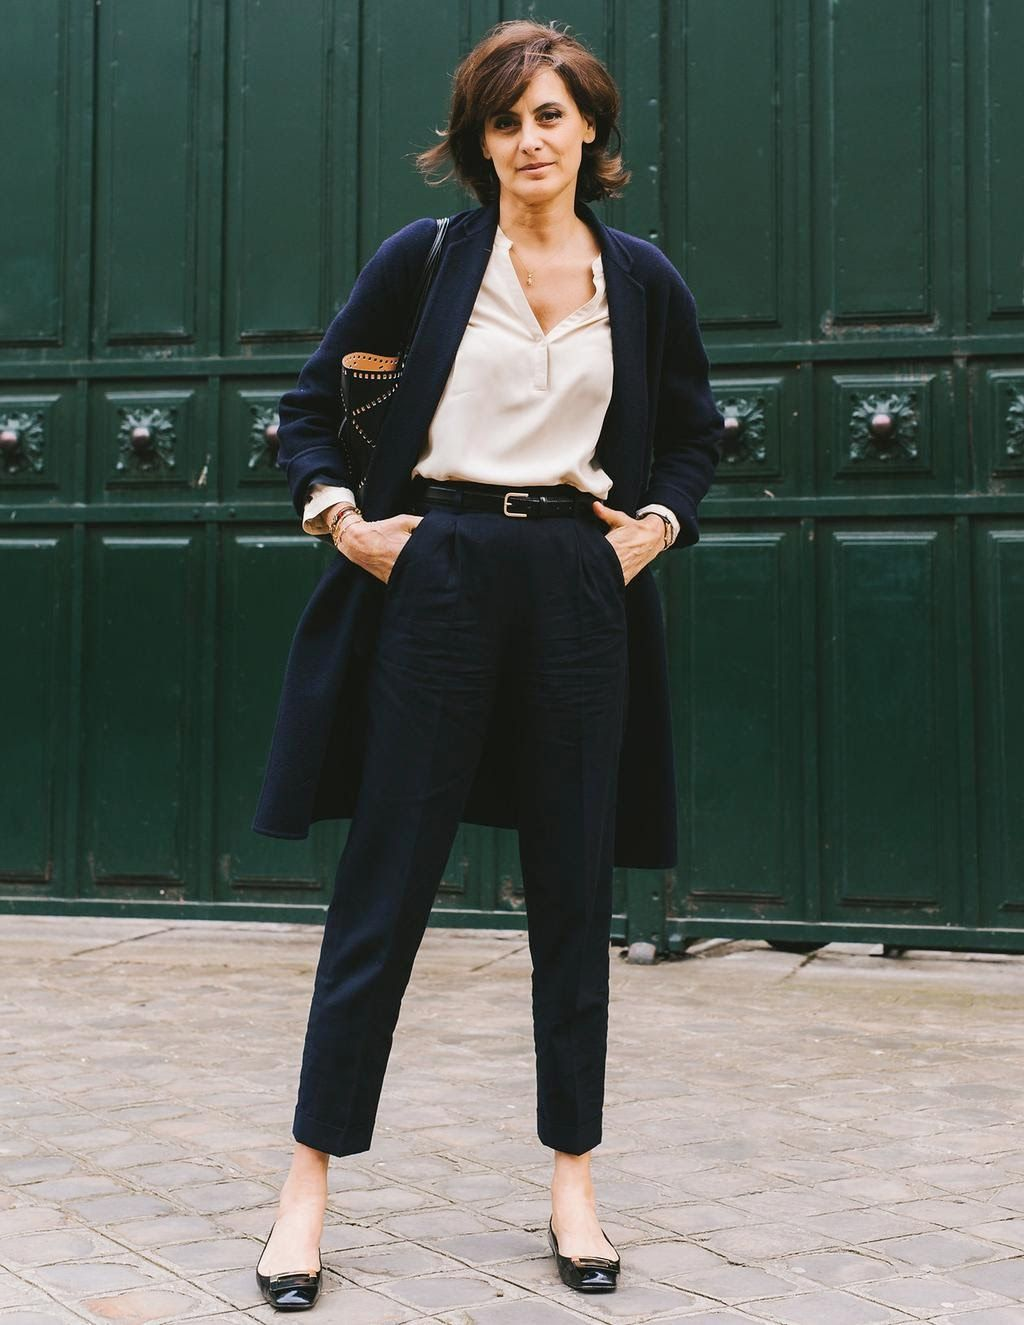 Parisian Uniform Dressing a la Ines de la Fressange | That's Not My Age | Bloglovin'